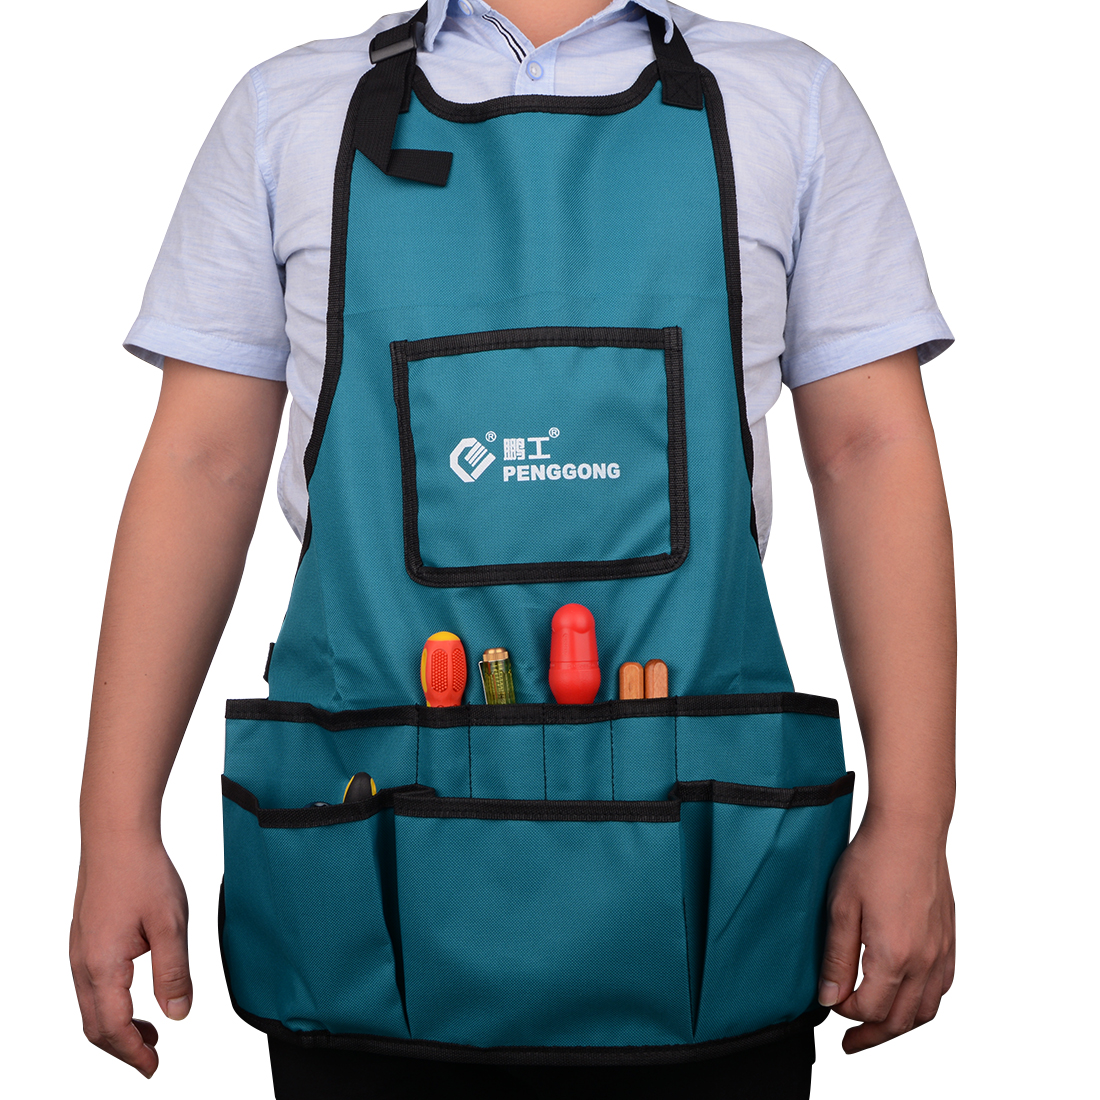 Hardware Kit Bag Tool Bags Garden Bag Multi-Purpose Garden Tool Apron With Multifunction Pockets